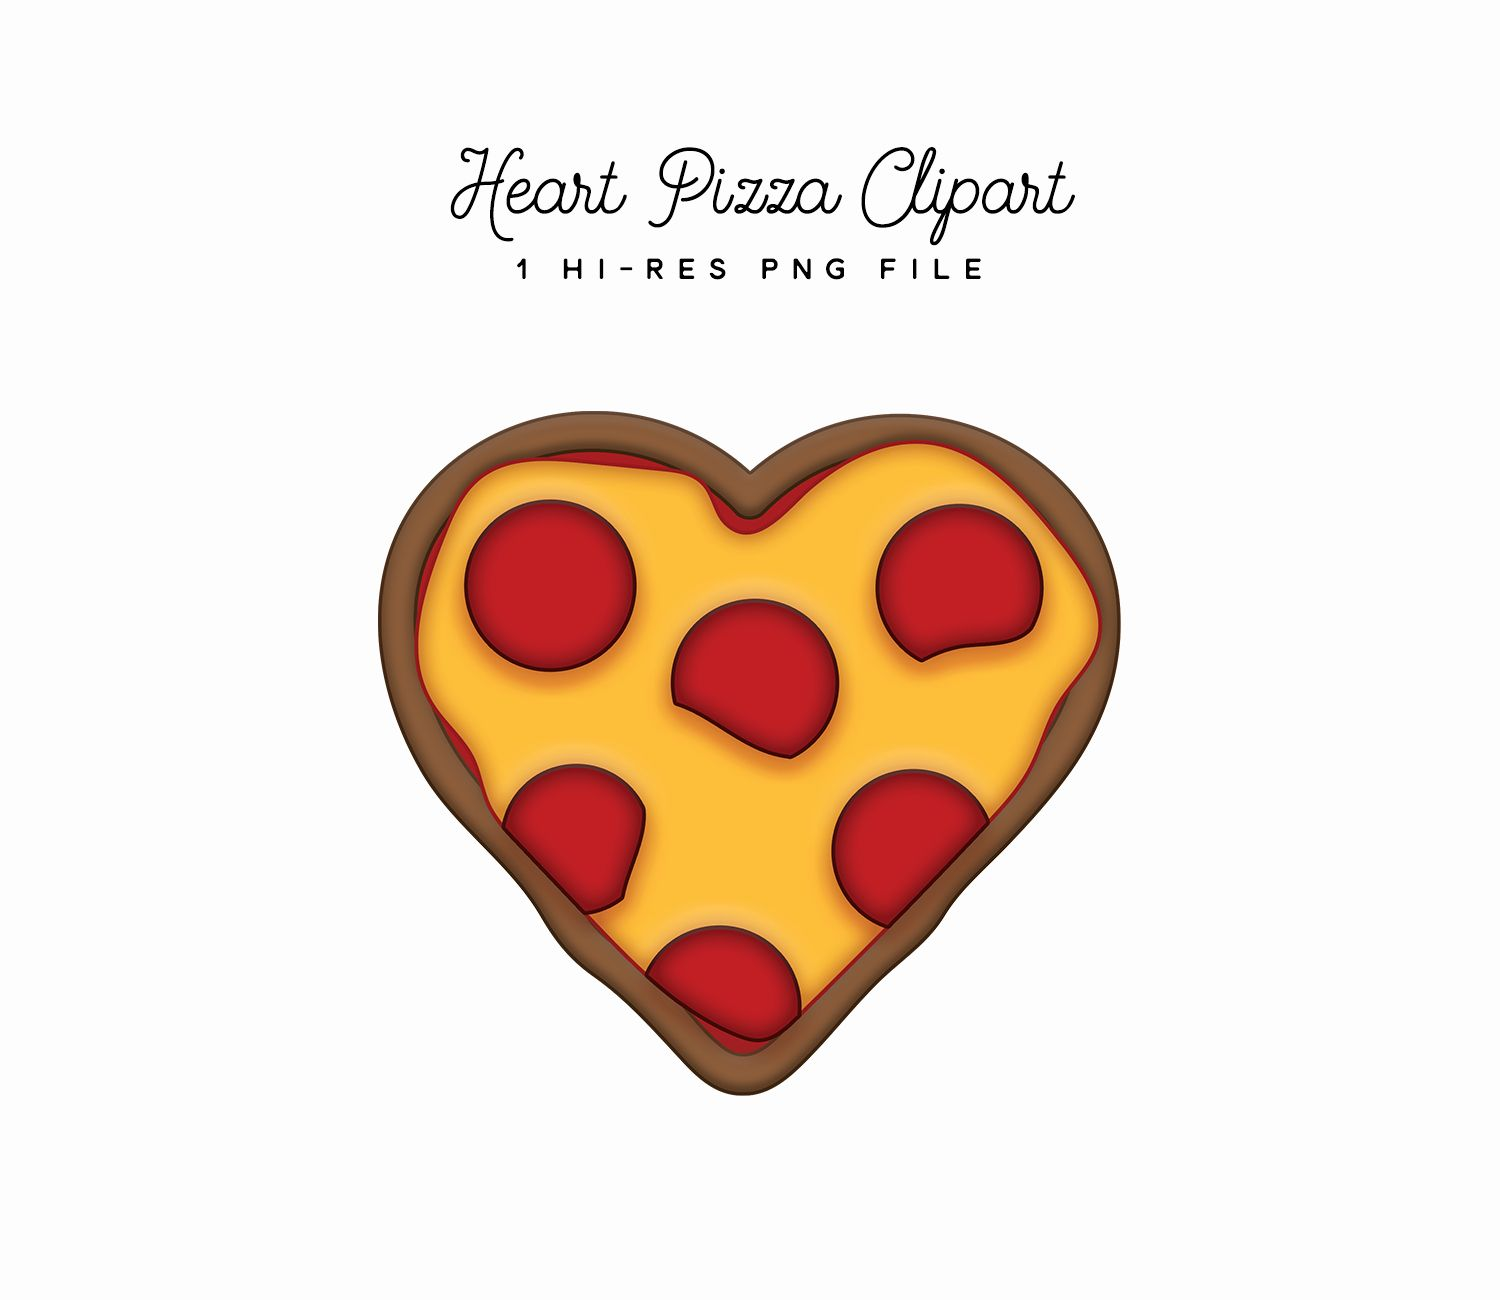 Pizza Toppings Coloring Pages Fresh Heart Pizza Clipart Coloring